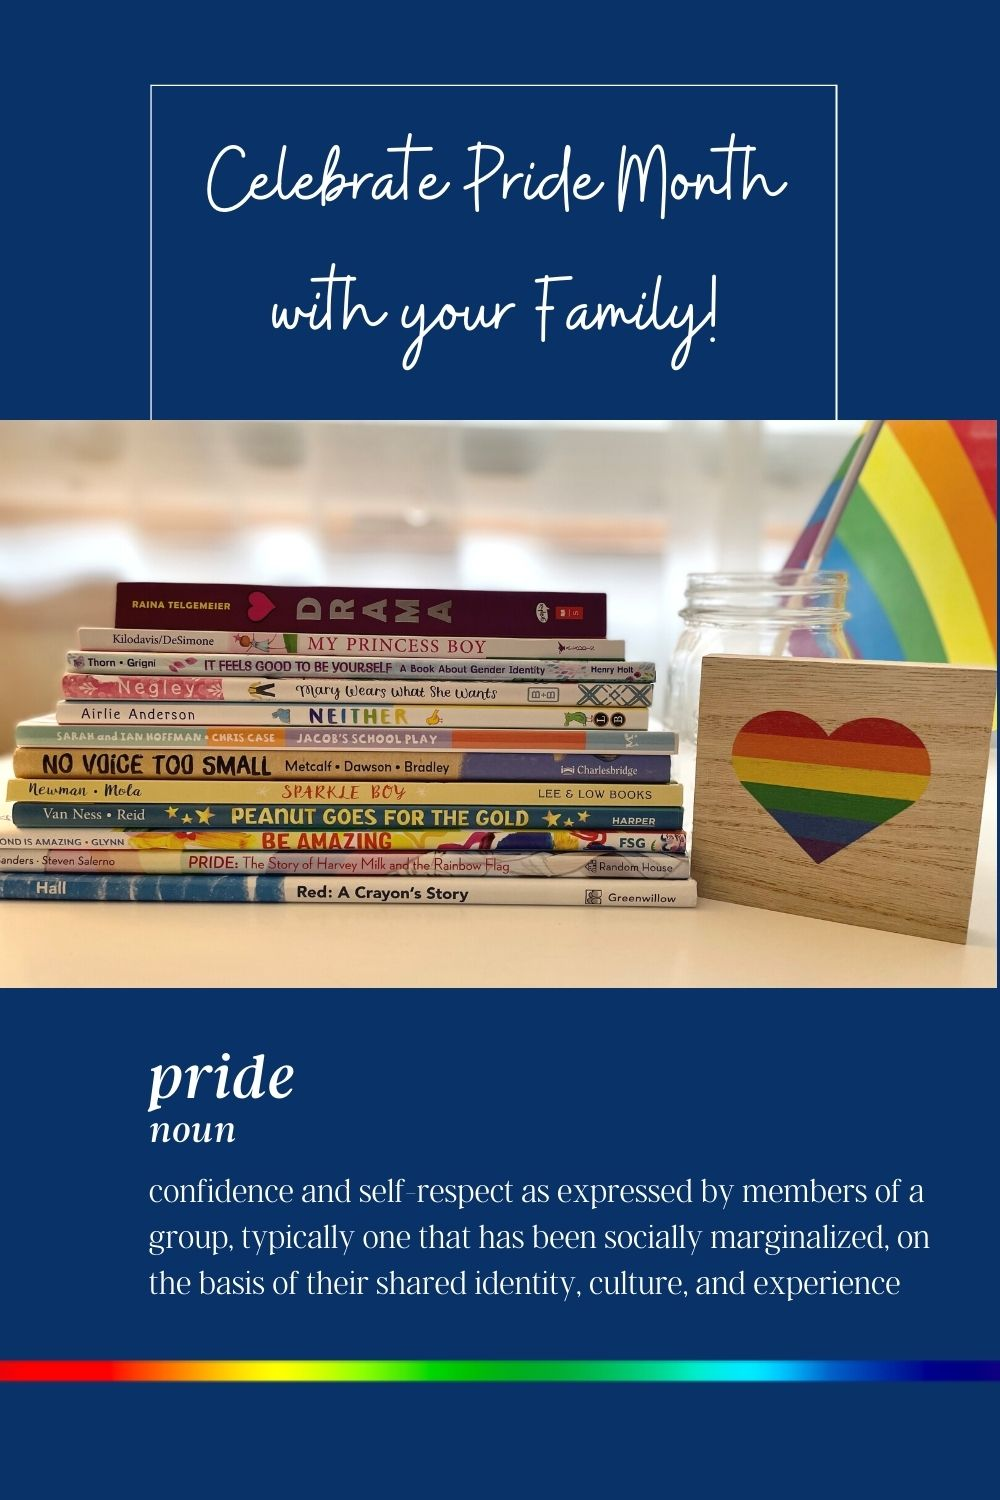 Celebrate Pride Month with Your Family